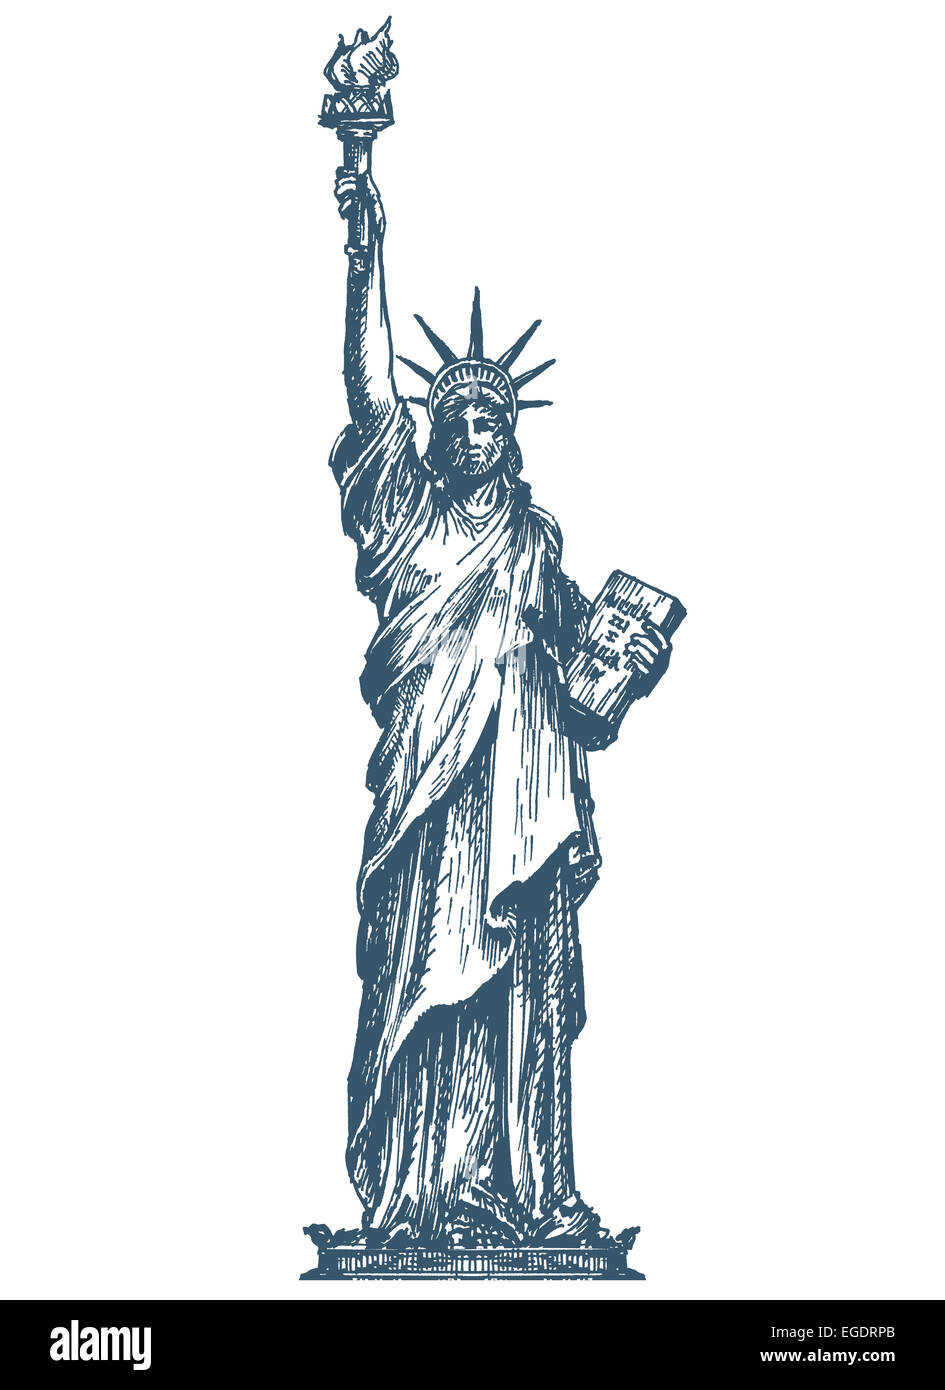 statue of liberty drawing template - usa logo design template united states or statue of